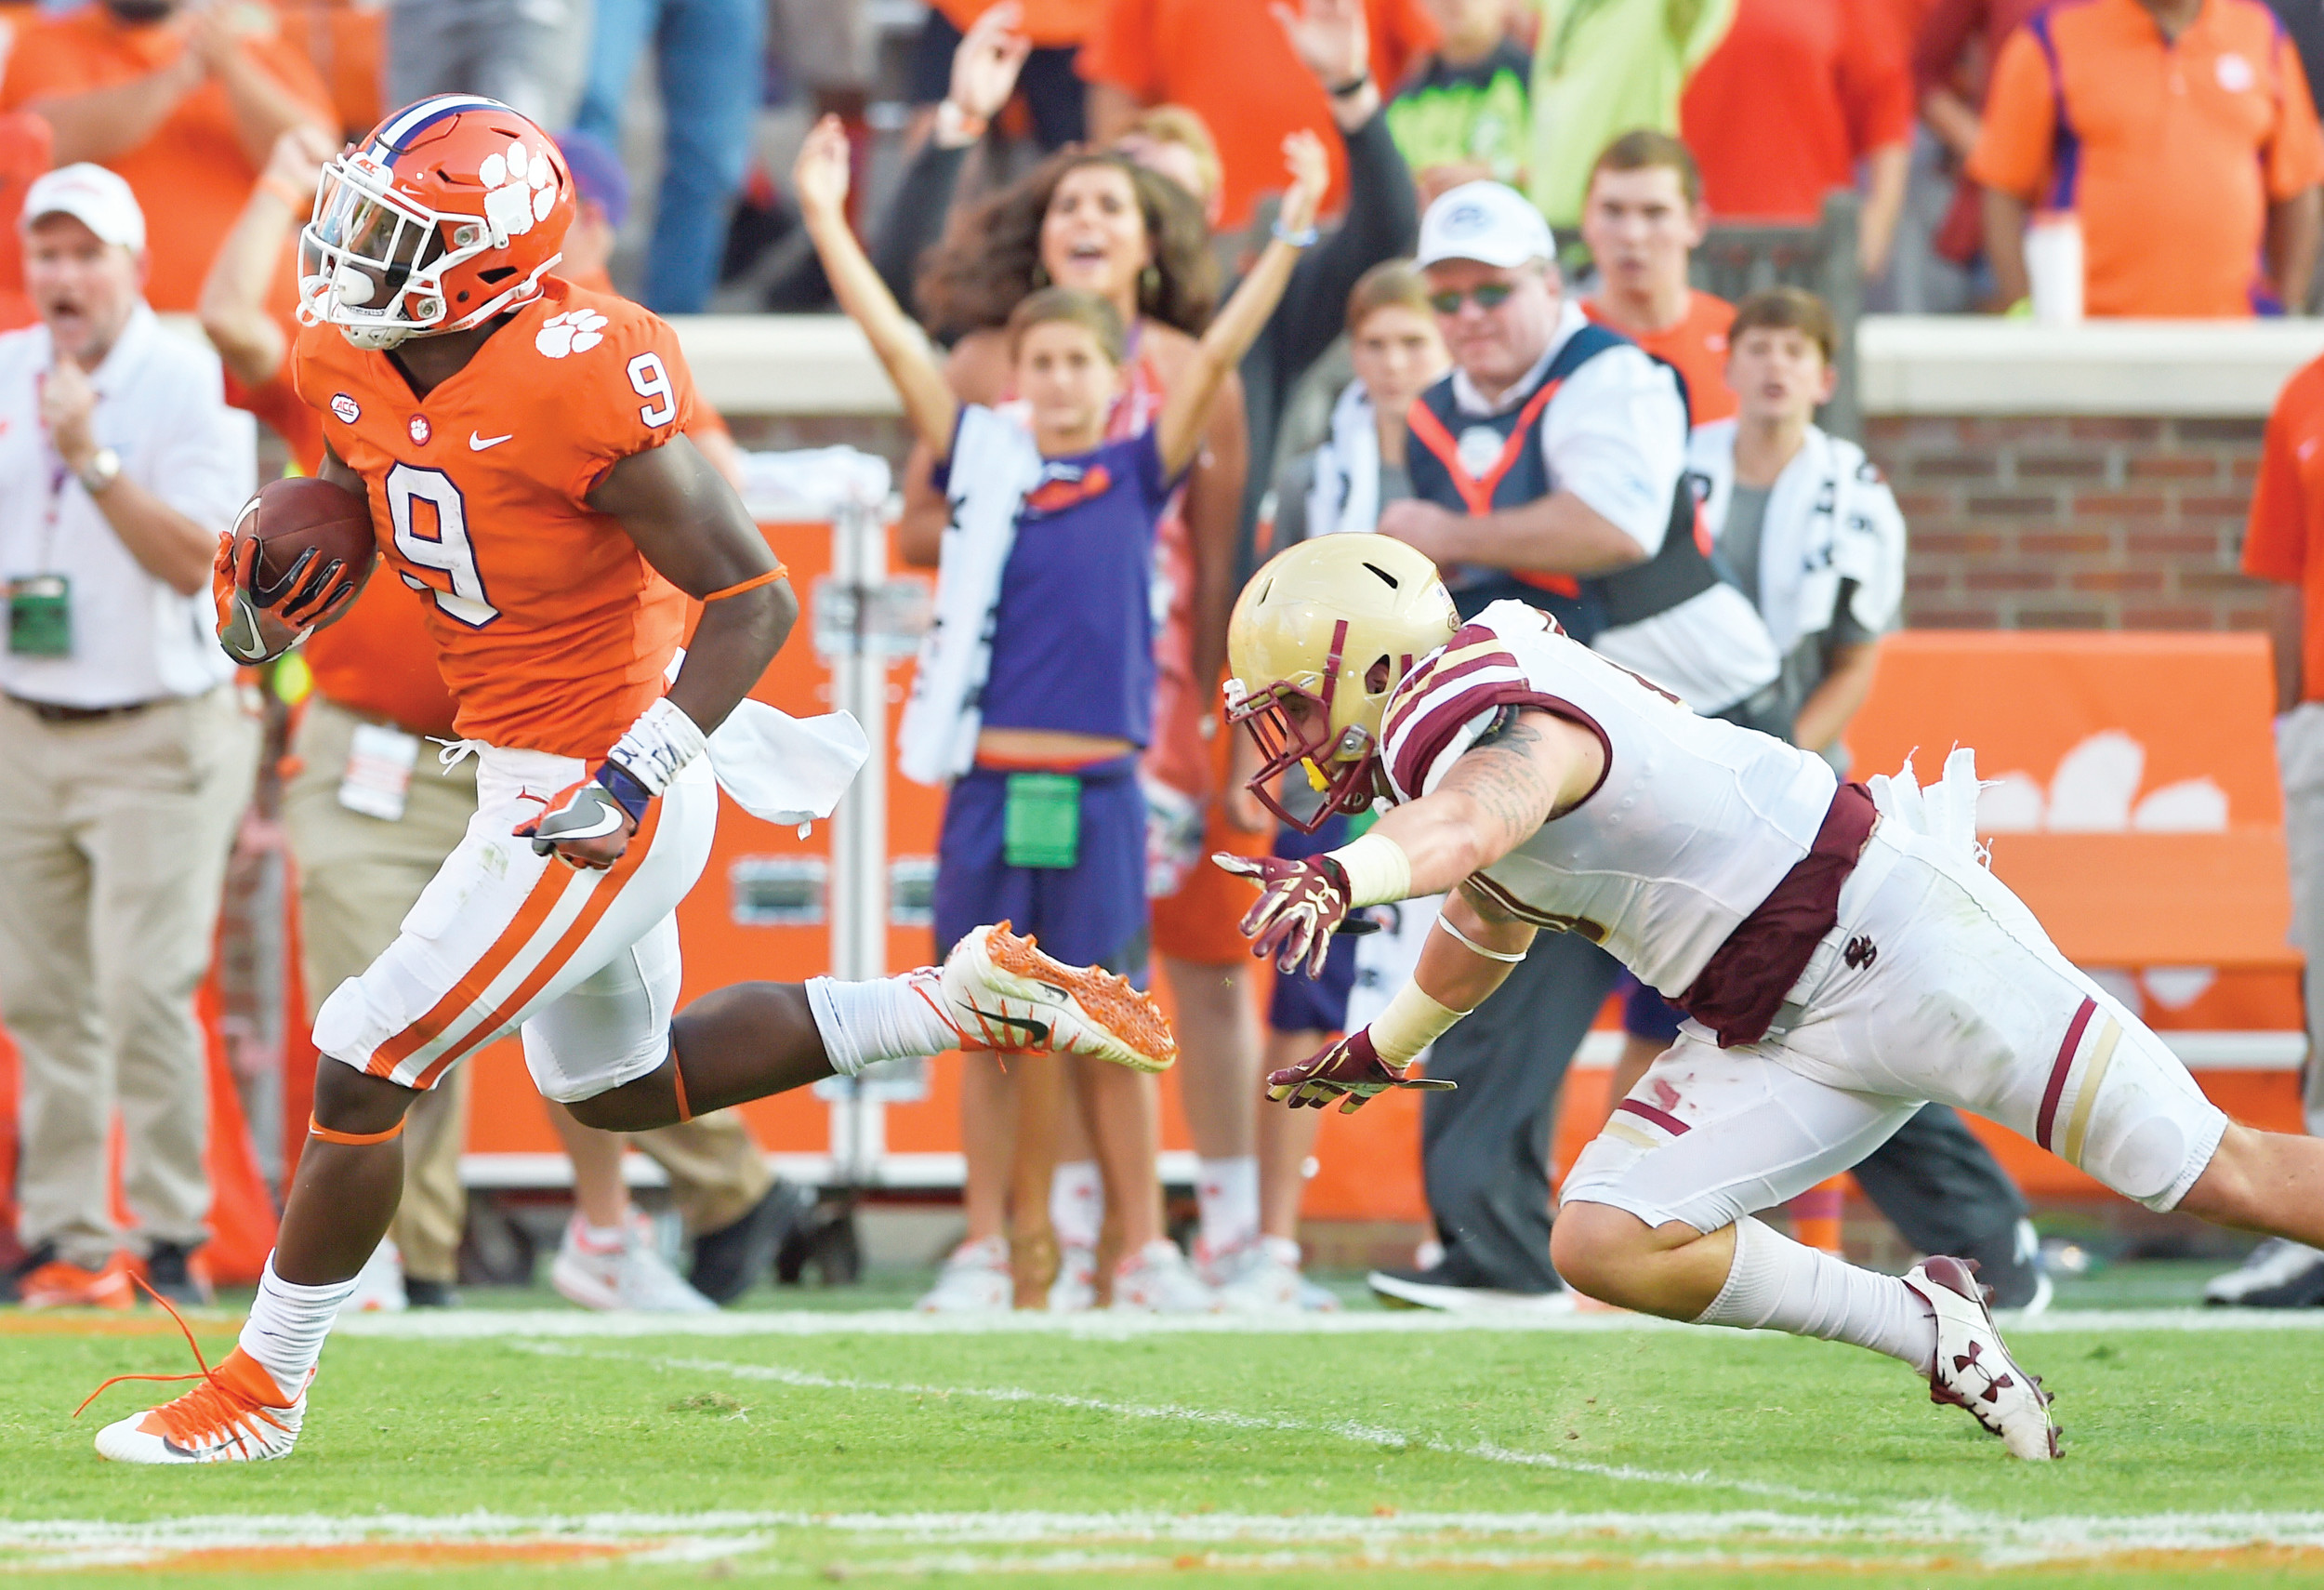 Clemson running back Travis Etienne (9) and the undefeated Tigers are now preparing for their next big test when they travel to 12th-ranked Virginia Tech on Saturday at 8 p.m.